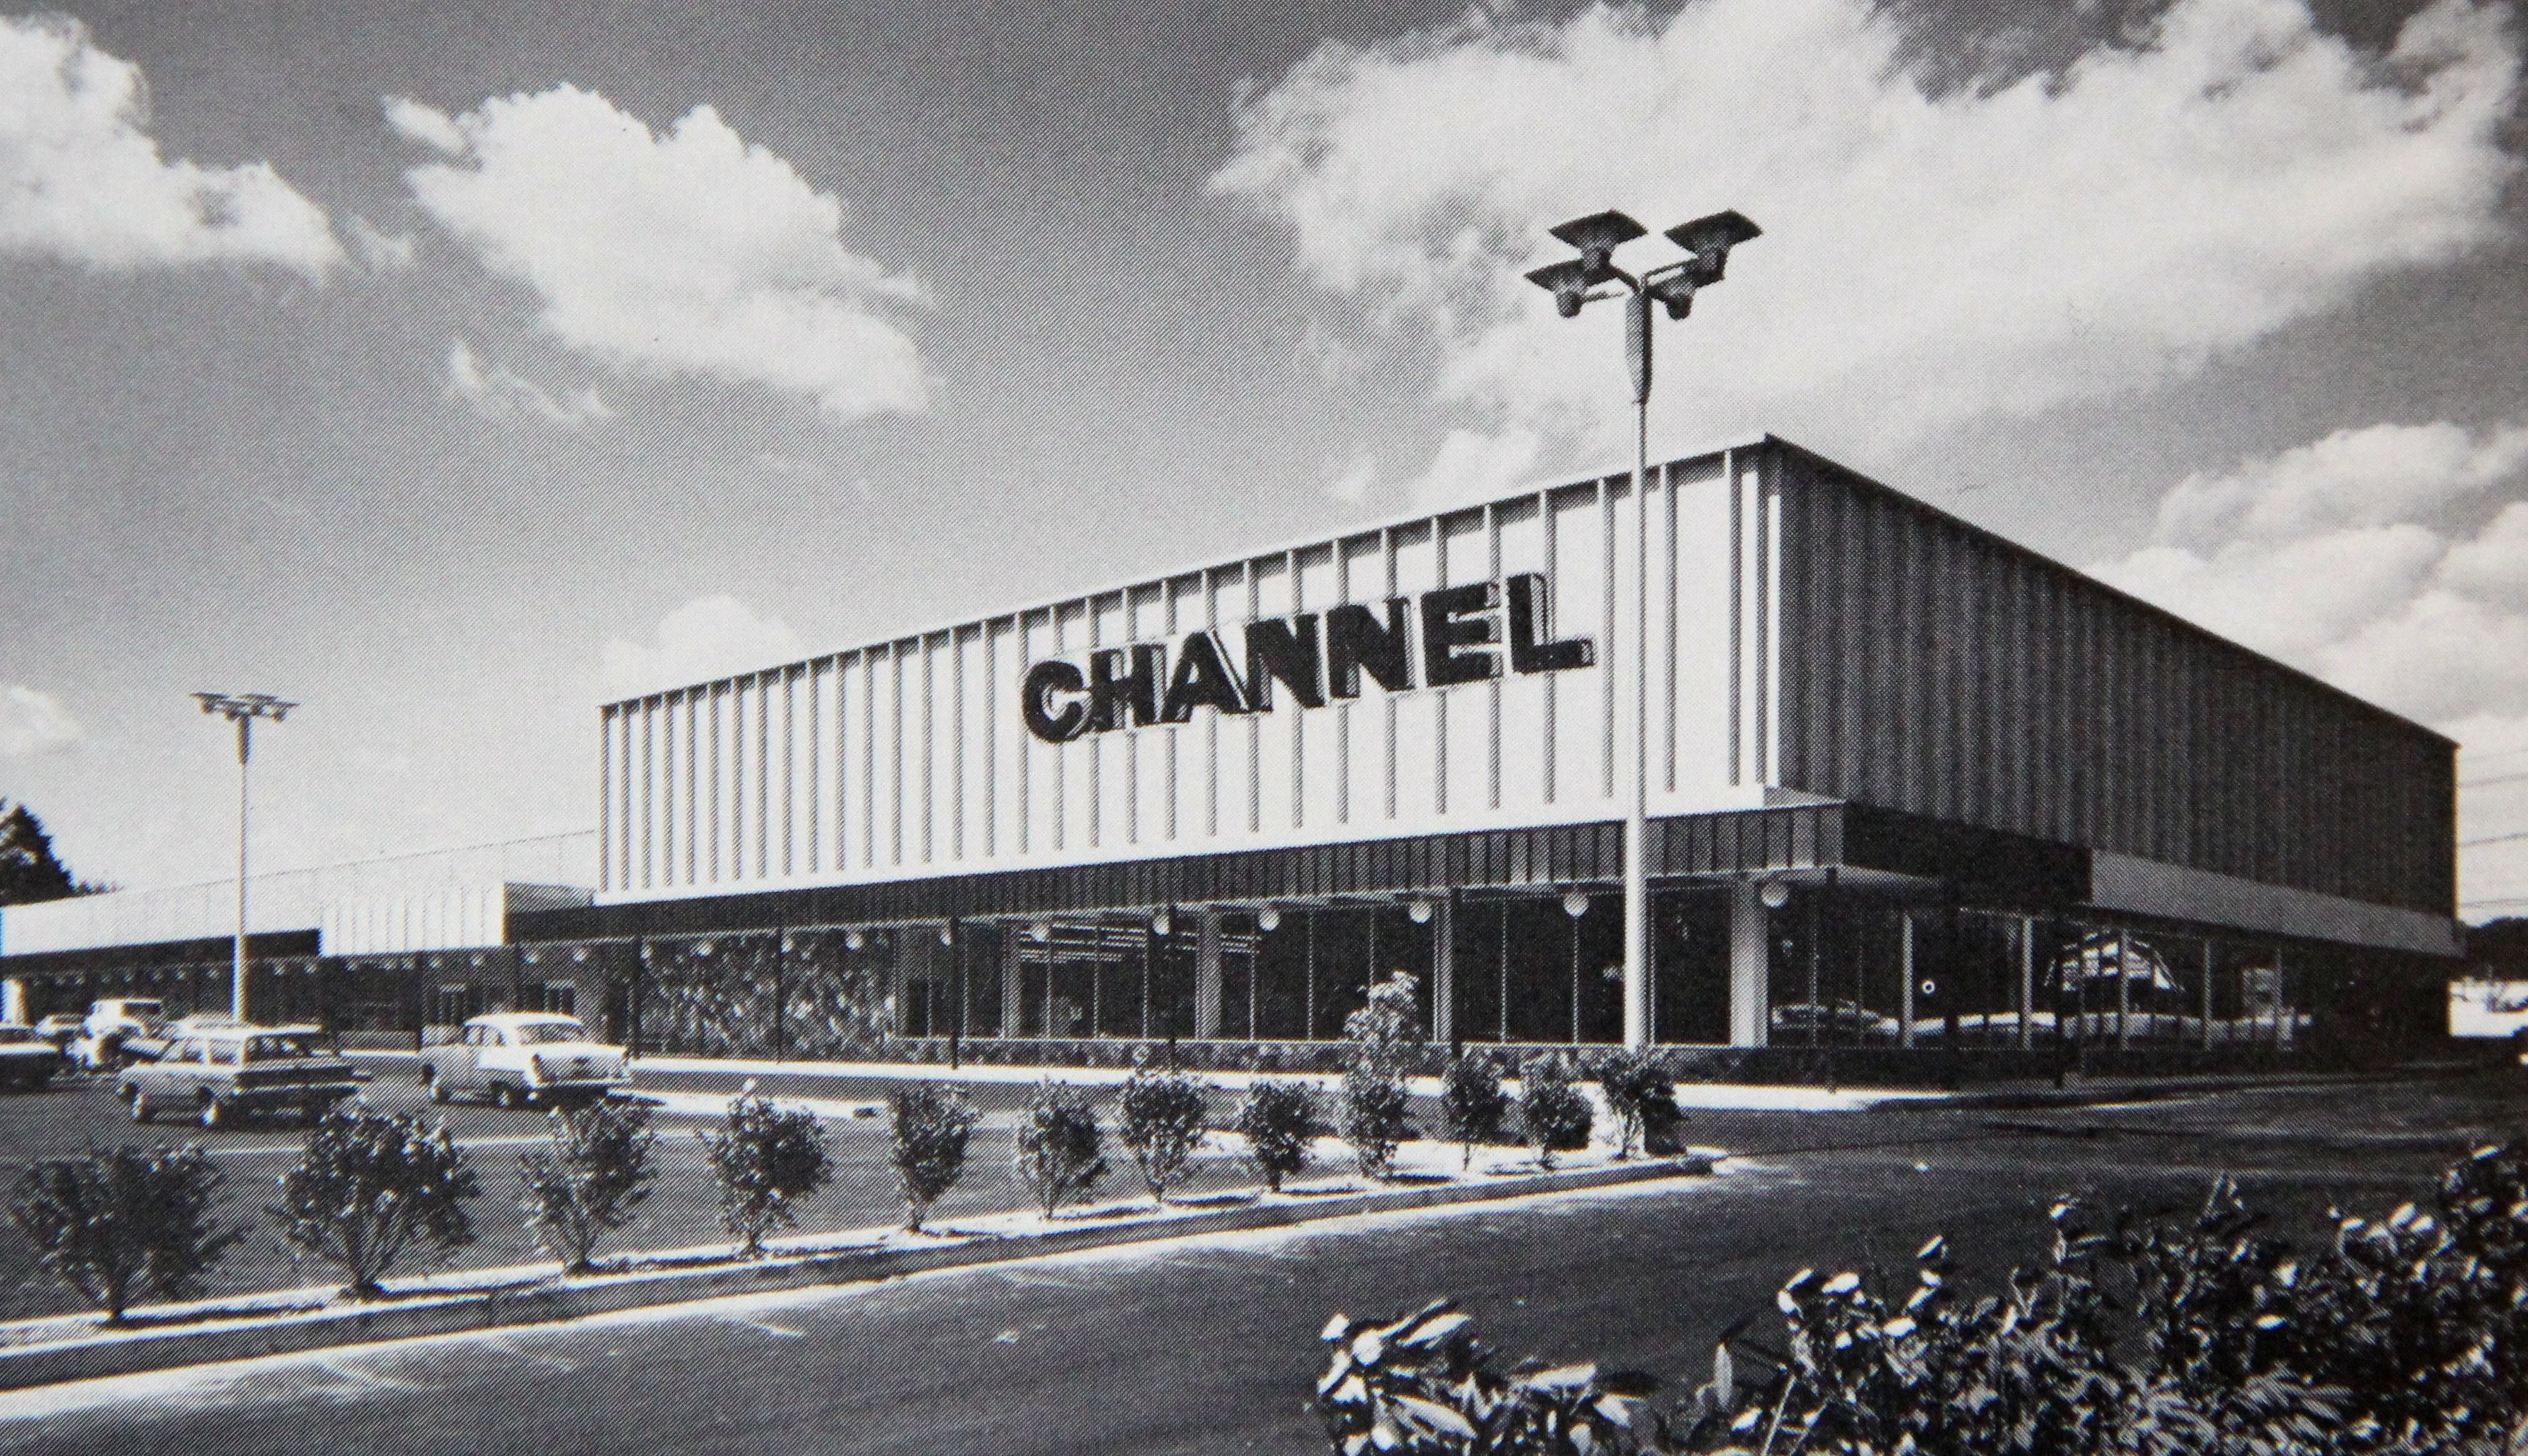 Channel on Route 17 in Paramus NJ 1960's Bergen county